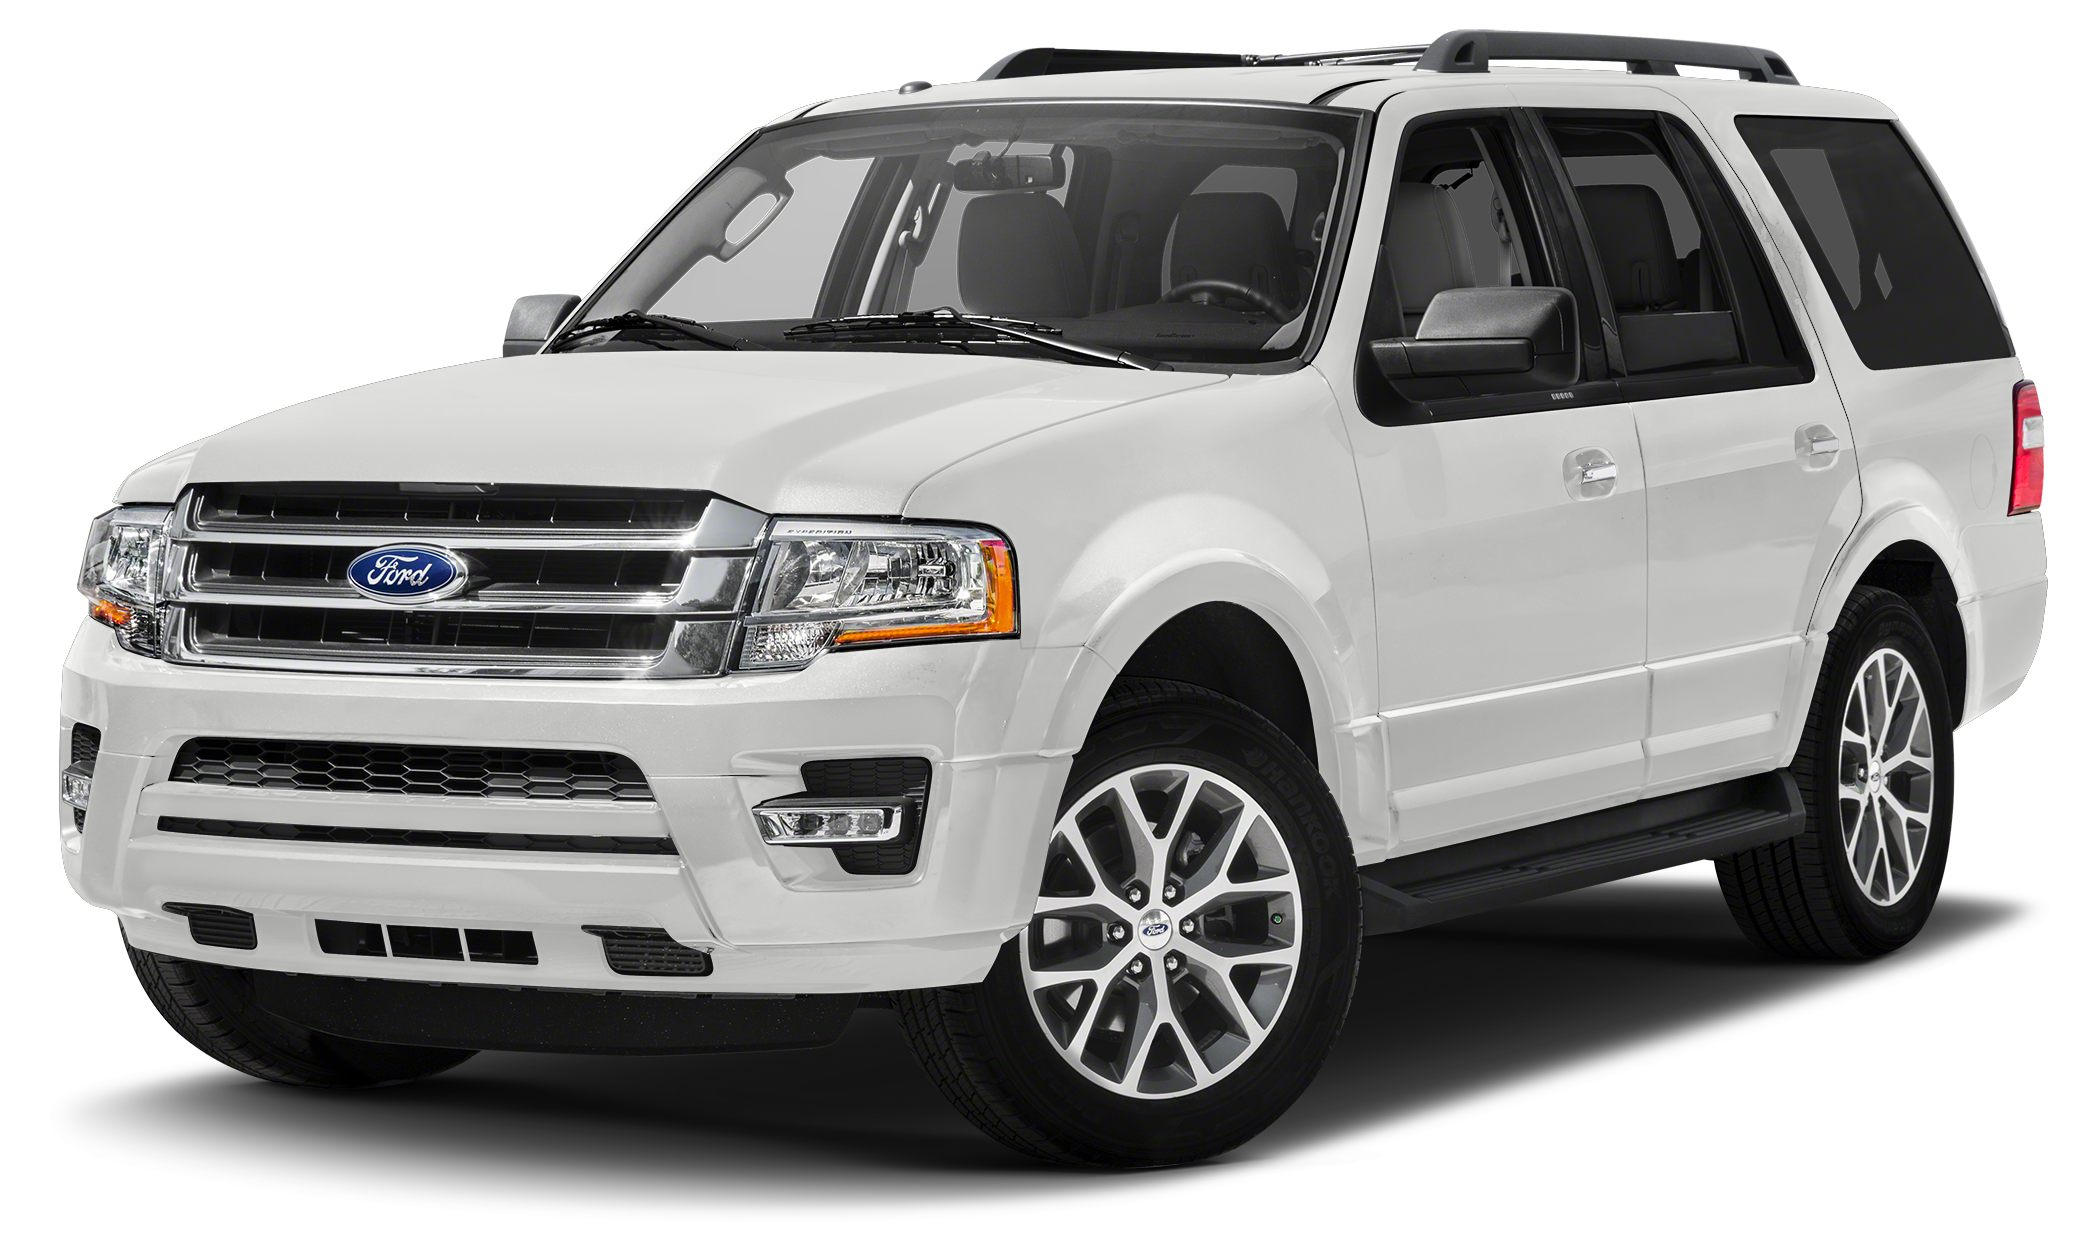 2015 Ford Expedition King Ranch Redesigned for 2015 welcome in the all new Ford Expedition A new